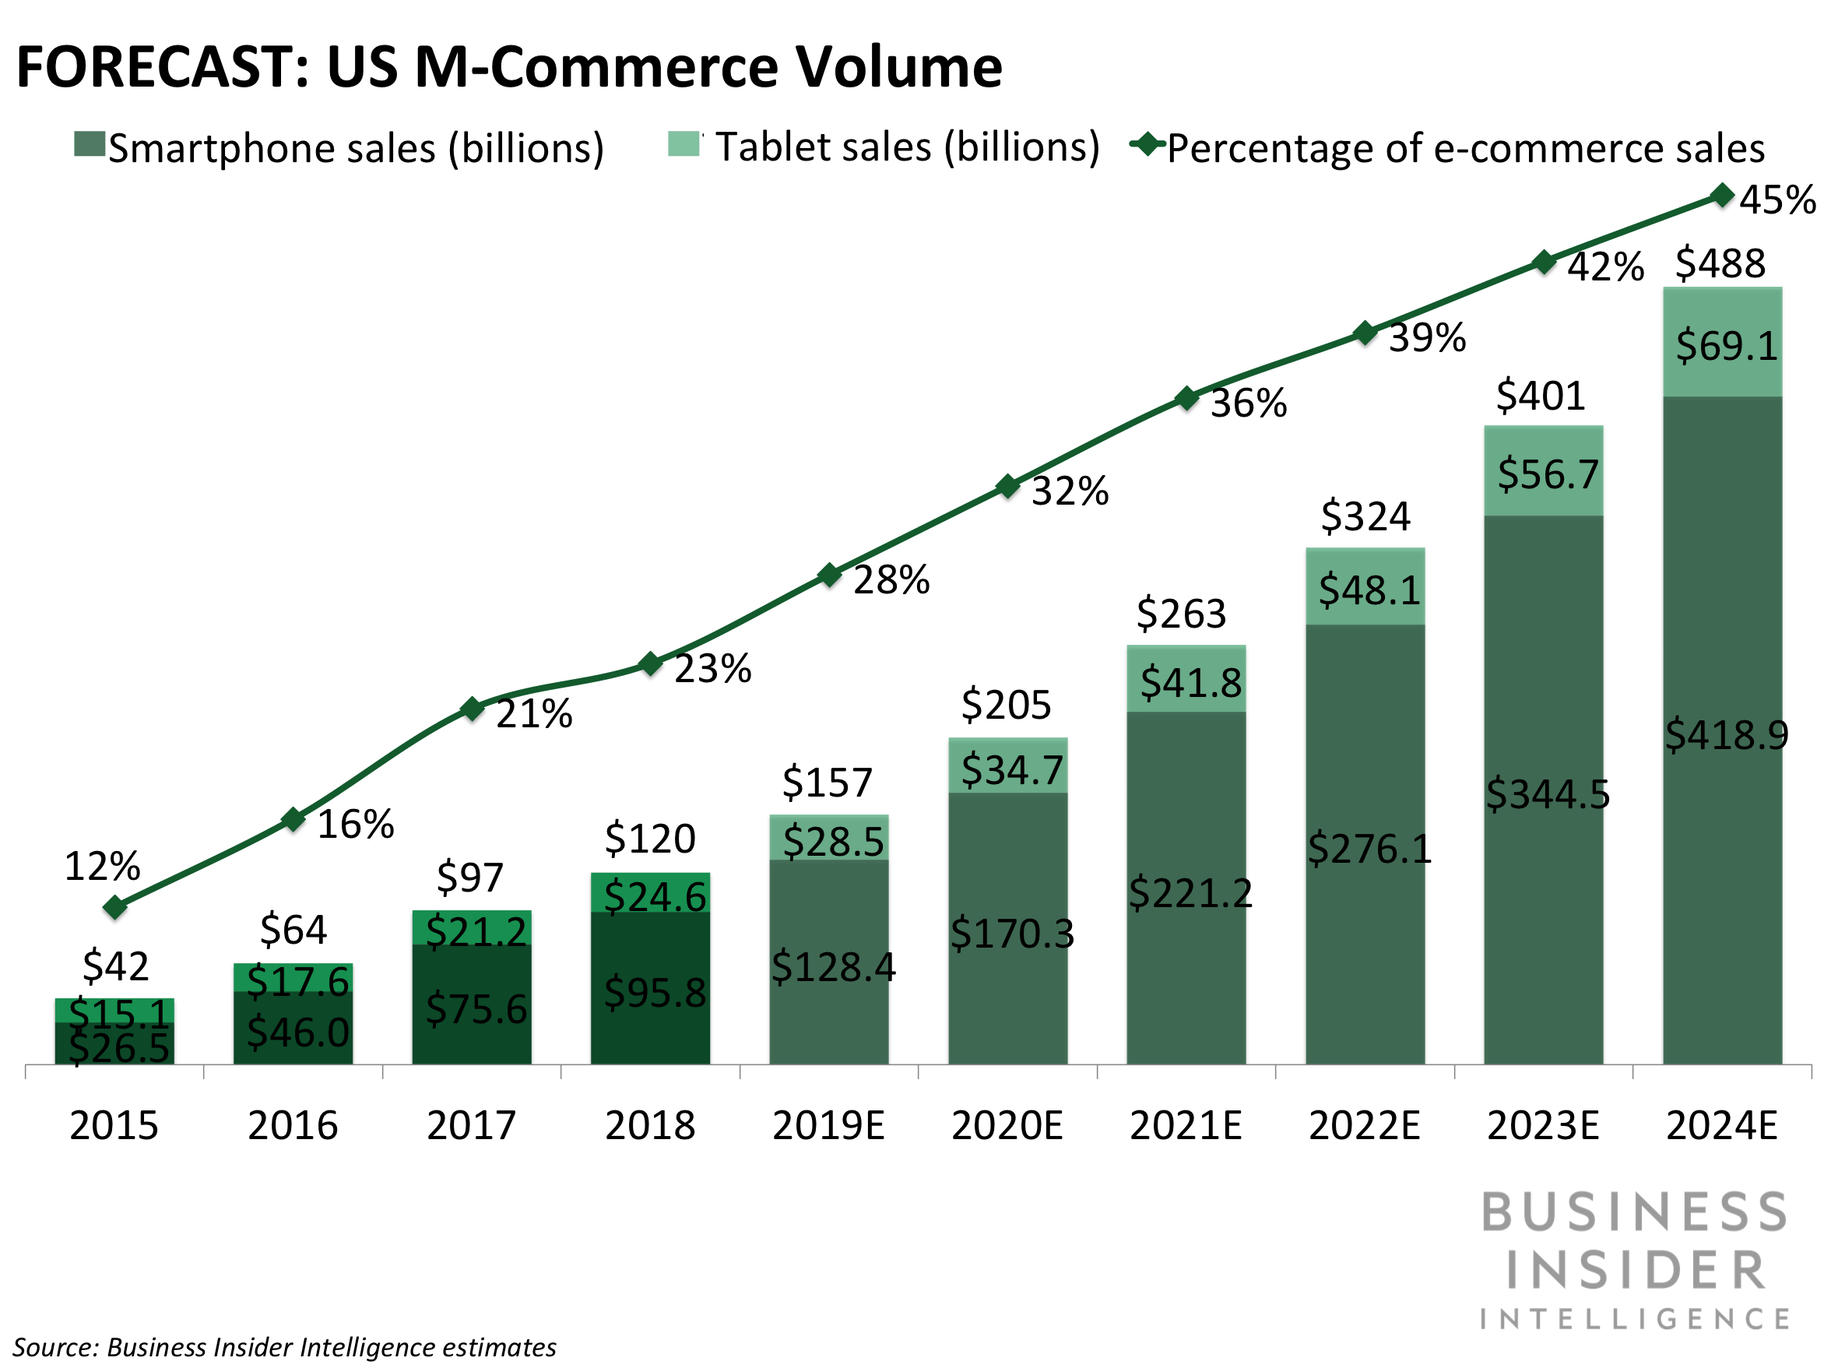 mcommerce growth 2024